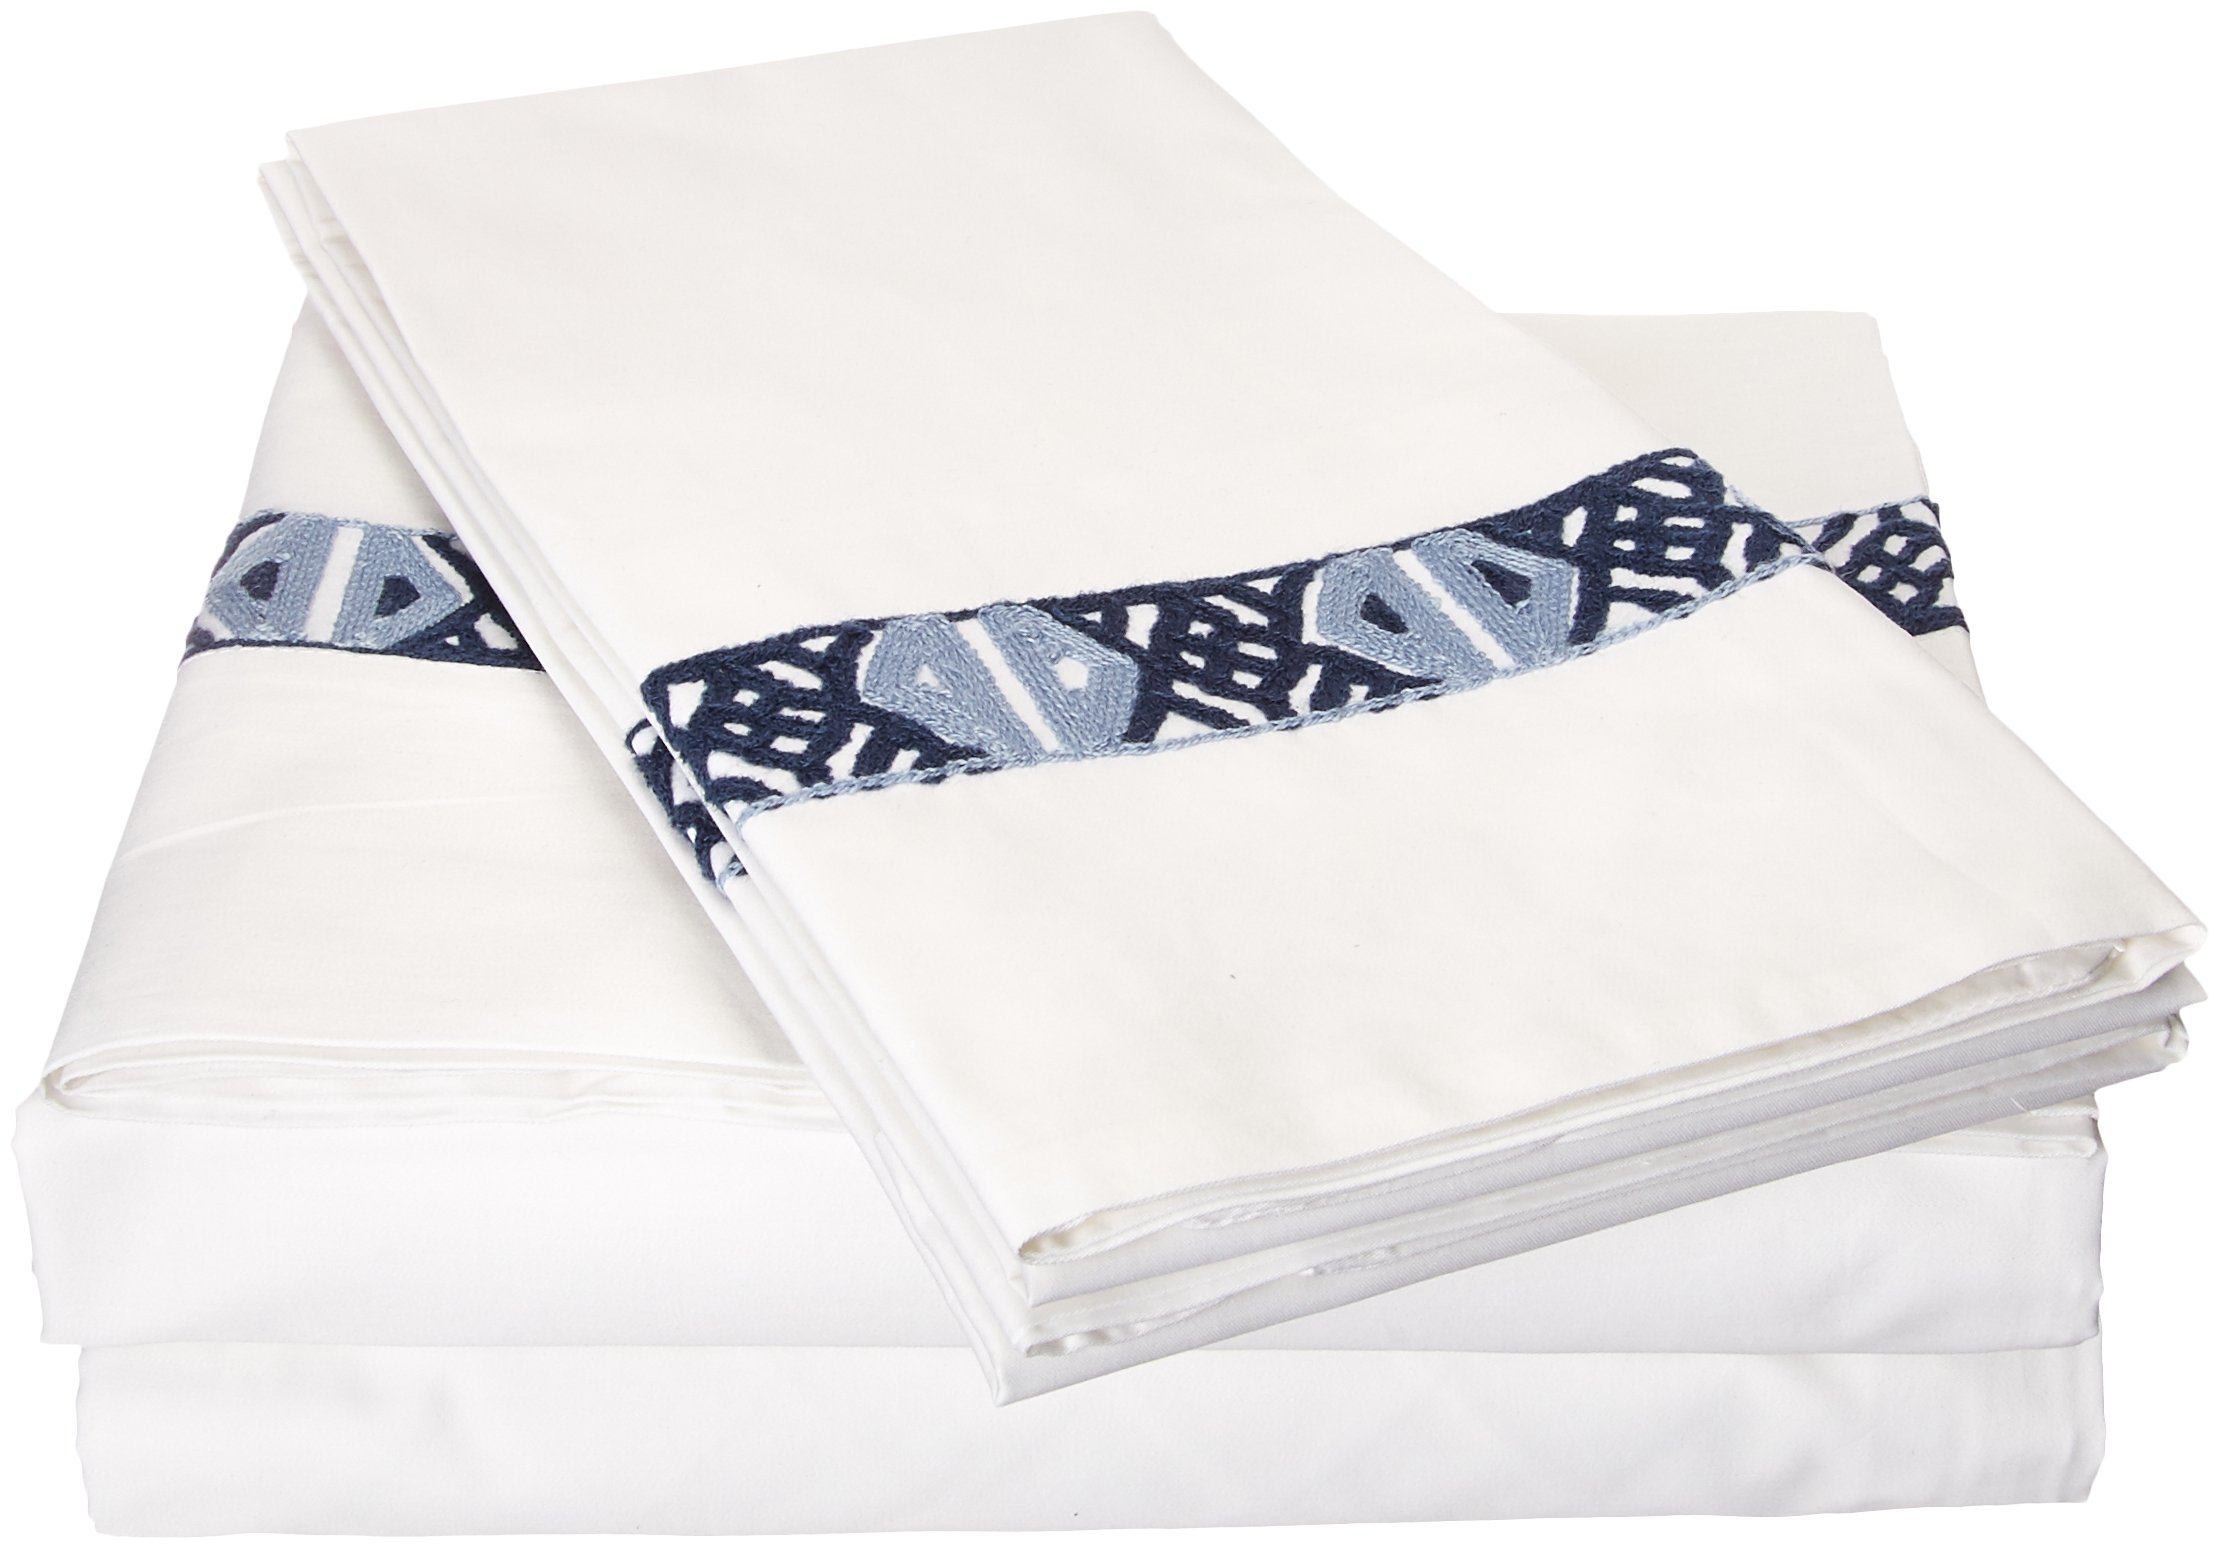 Luxury Bedding Company LBSS0768-AN Sarita Garden Lux-Bed 4 Piece Sheet Set, Queen, White